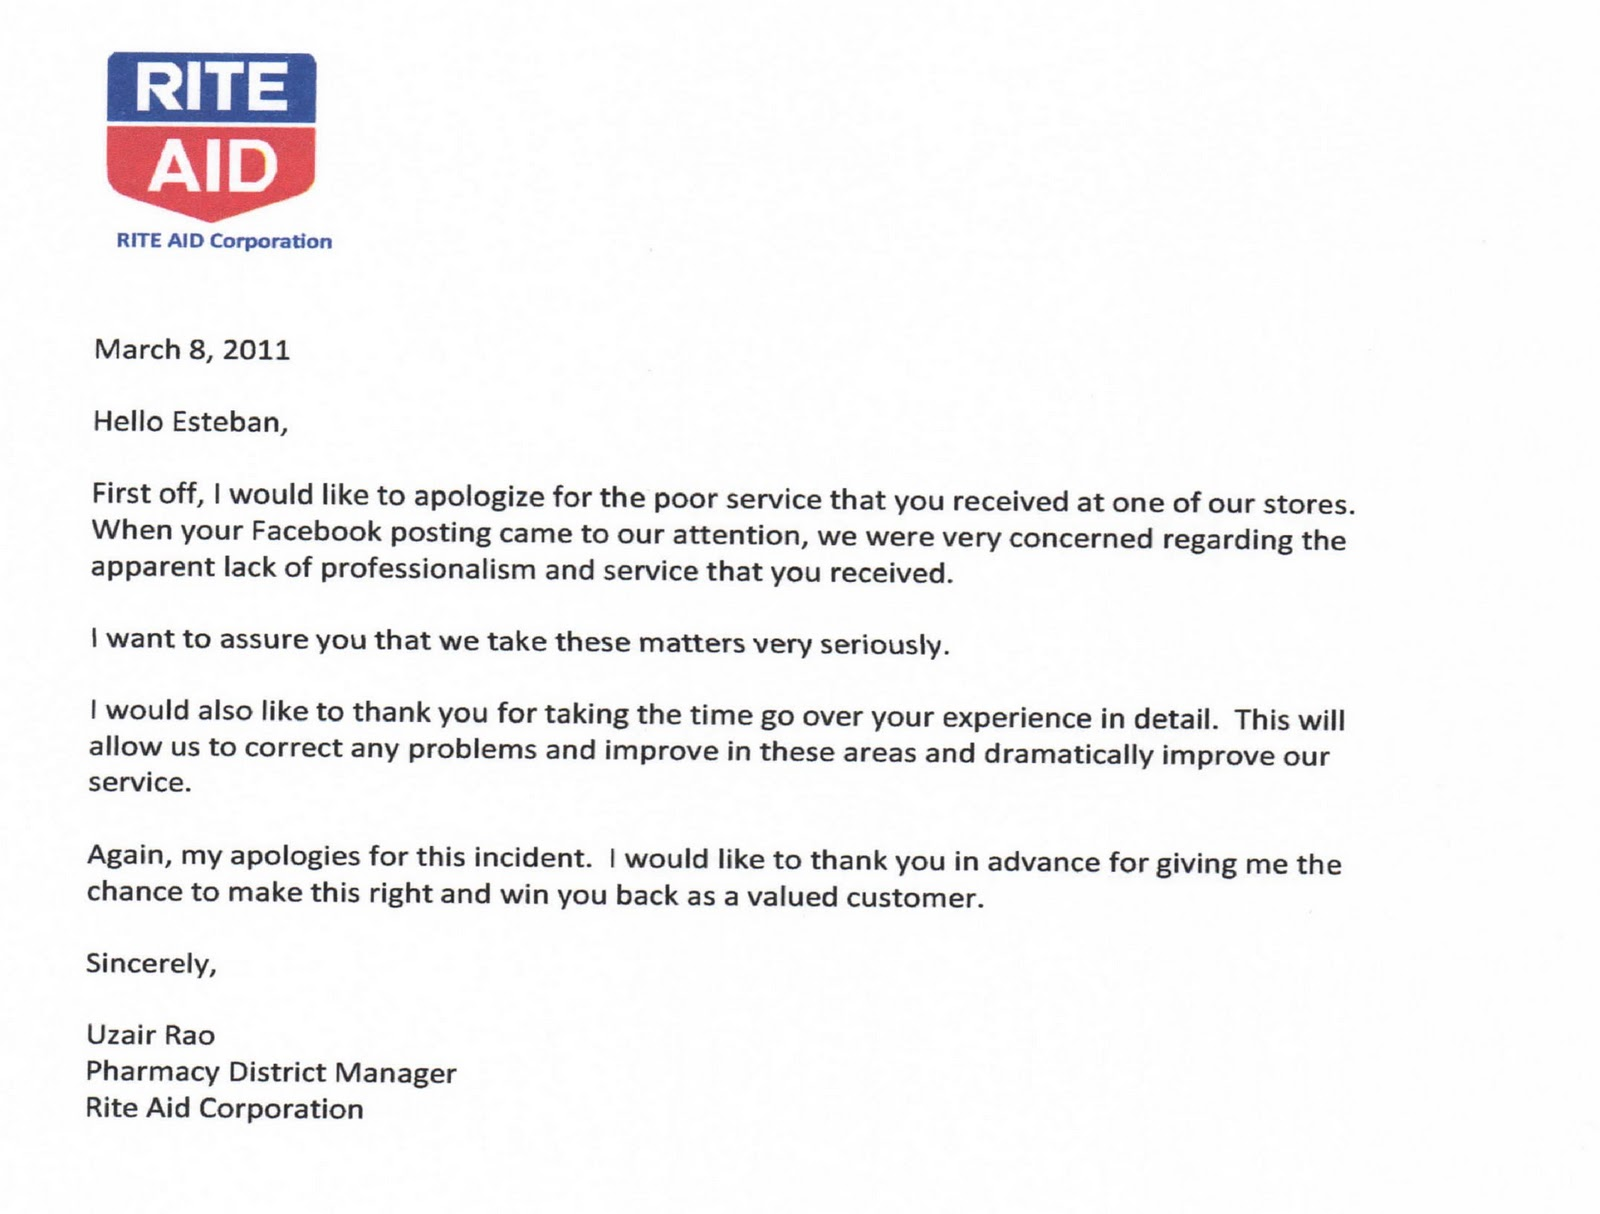 rite aid pharmacy and store apology letter to esteban escobar steven escobar